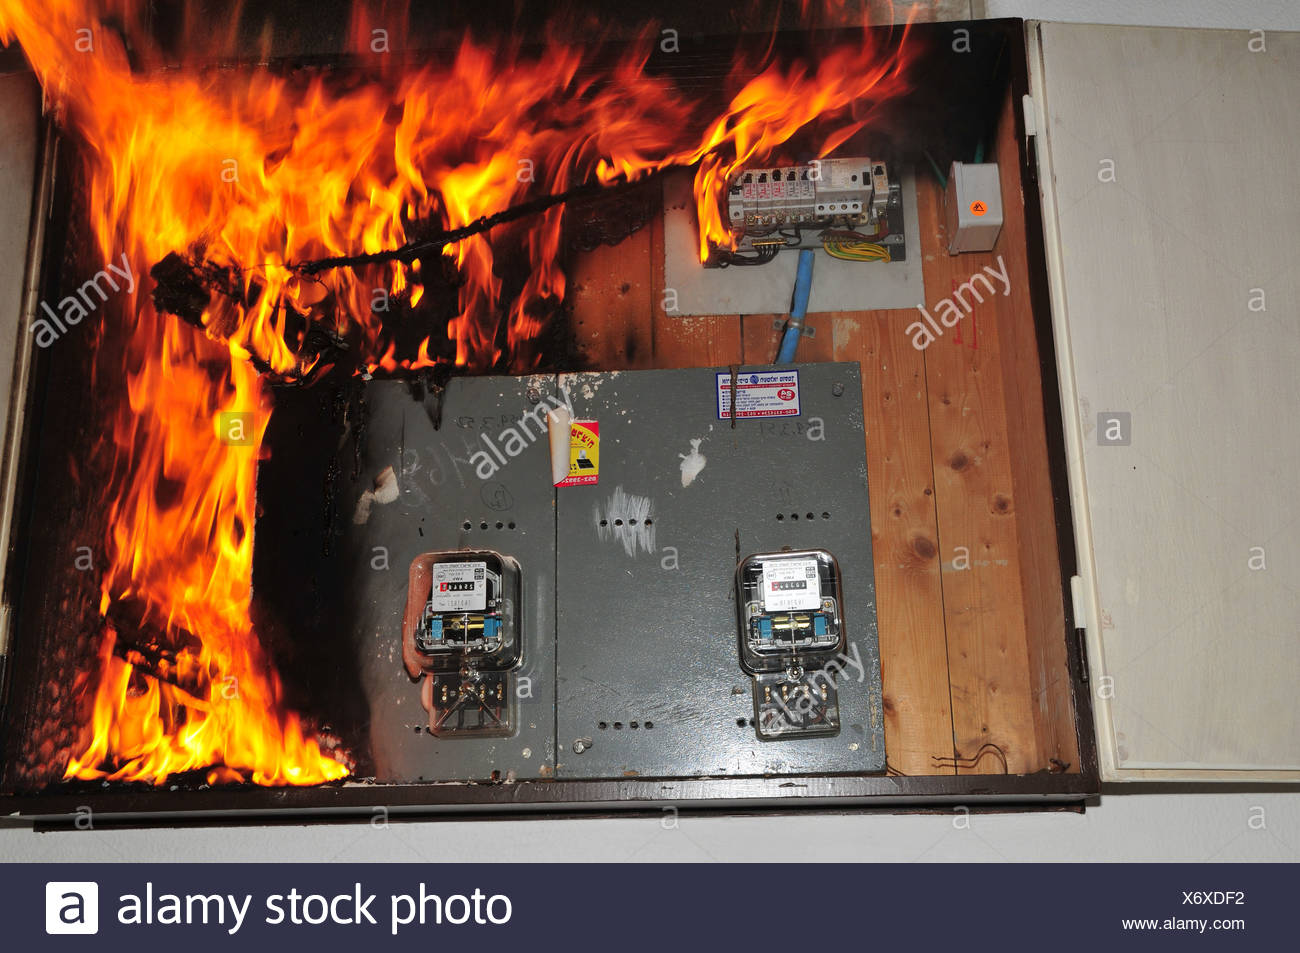 hight resolution of fuse box fire data wiring diagram today rh 46 unimath de breaker fuse box information penny fuse caused a fire box